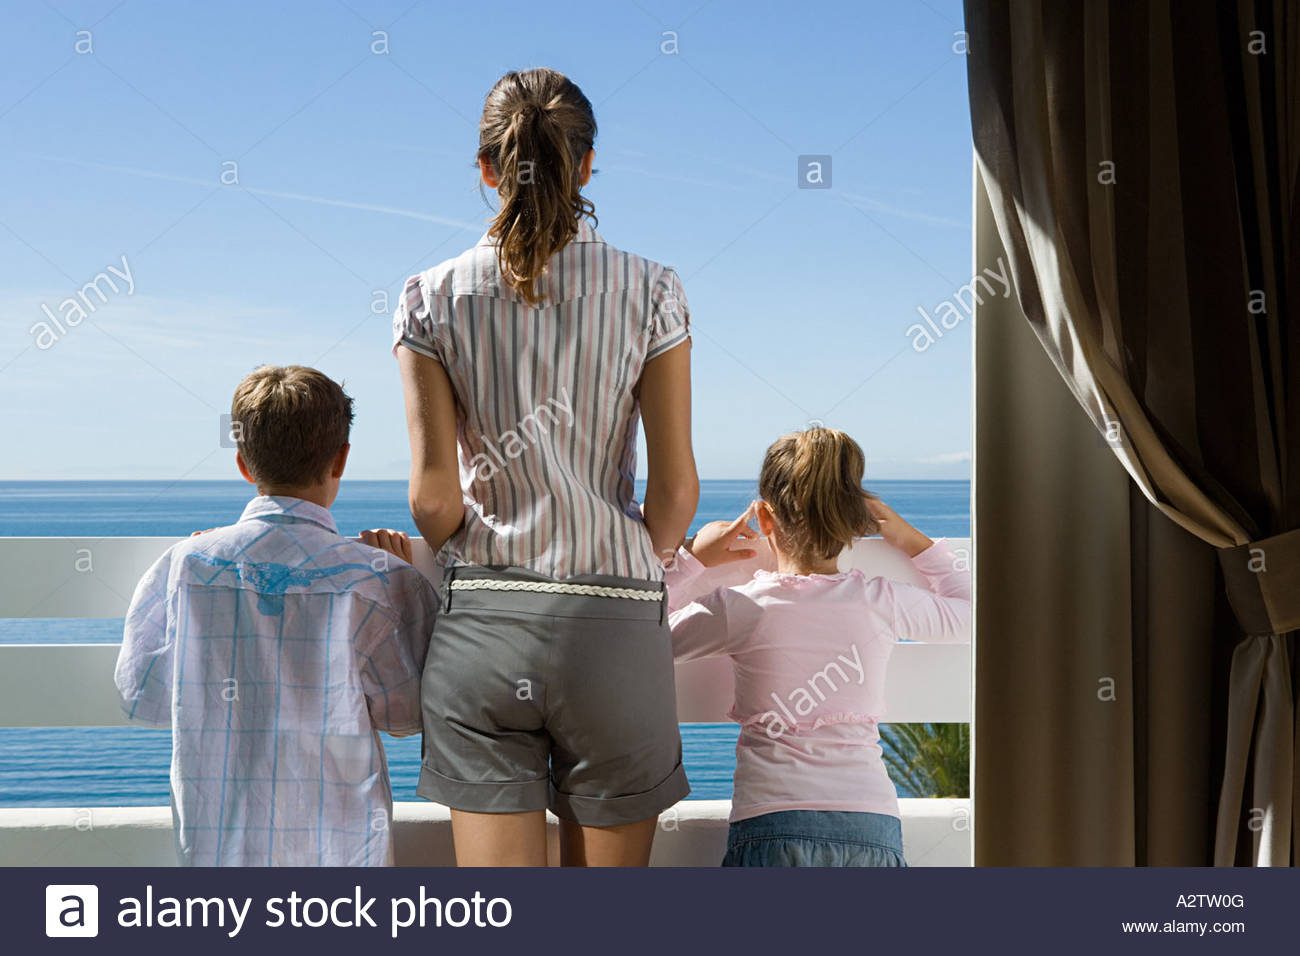 Mother on balcony with children - Stock Image